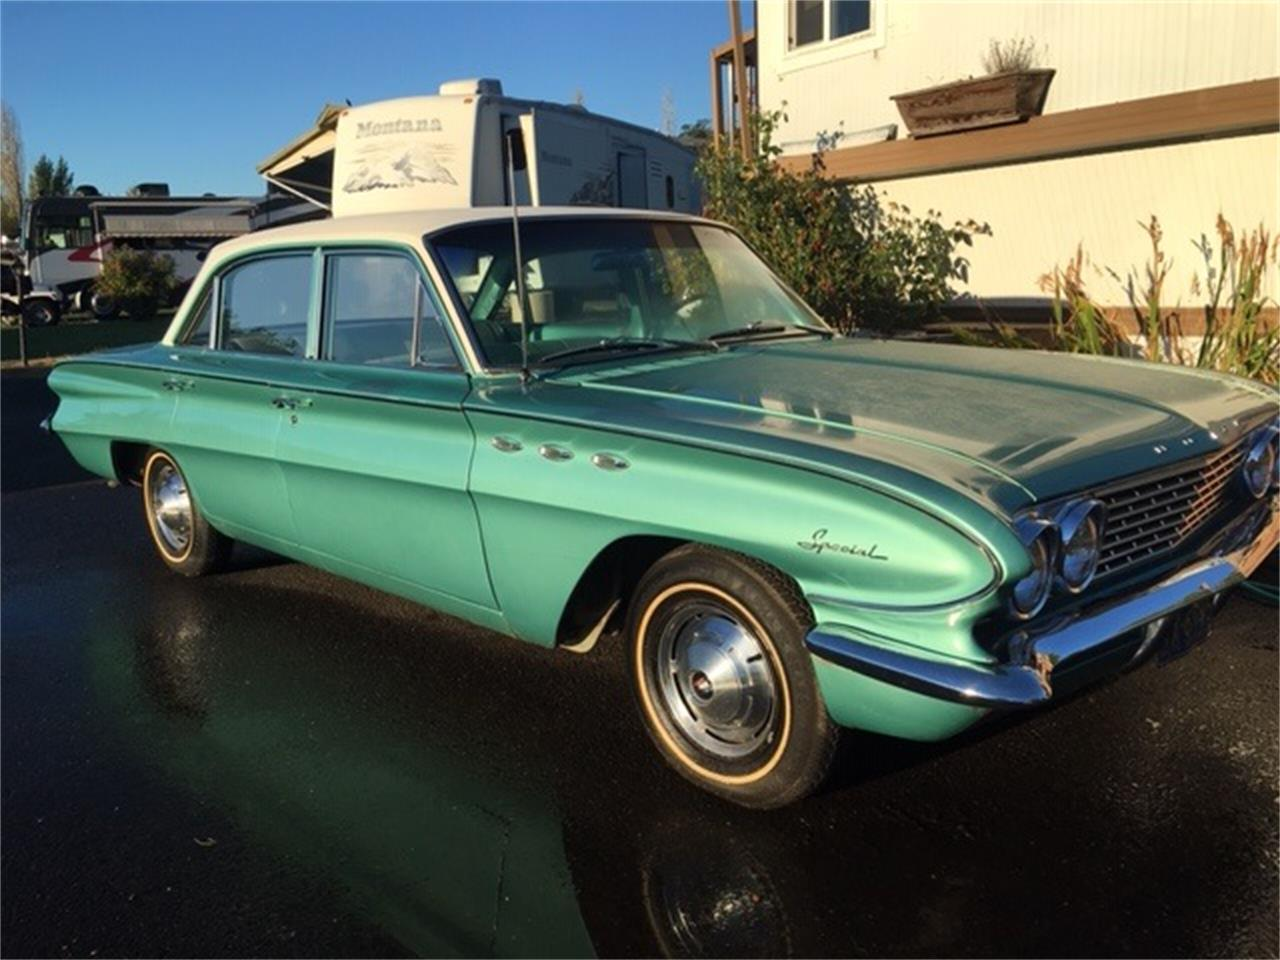 Large Picture of '61 Buick Special Deluxe located in Beaverton Oregon - $6,850.00 - P7XC